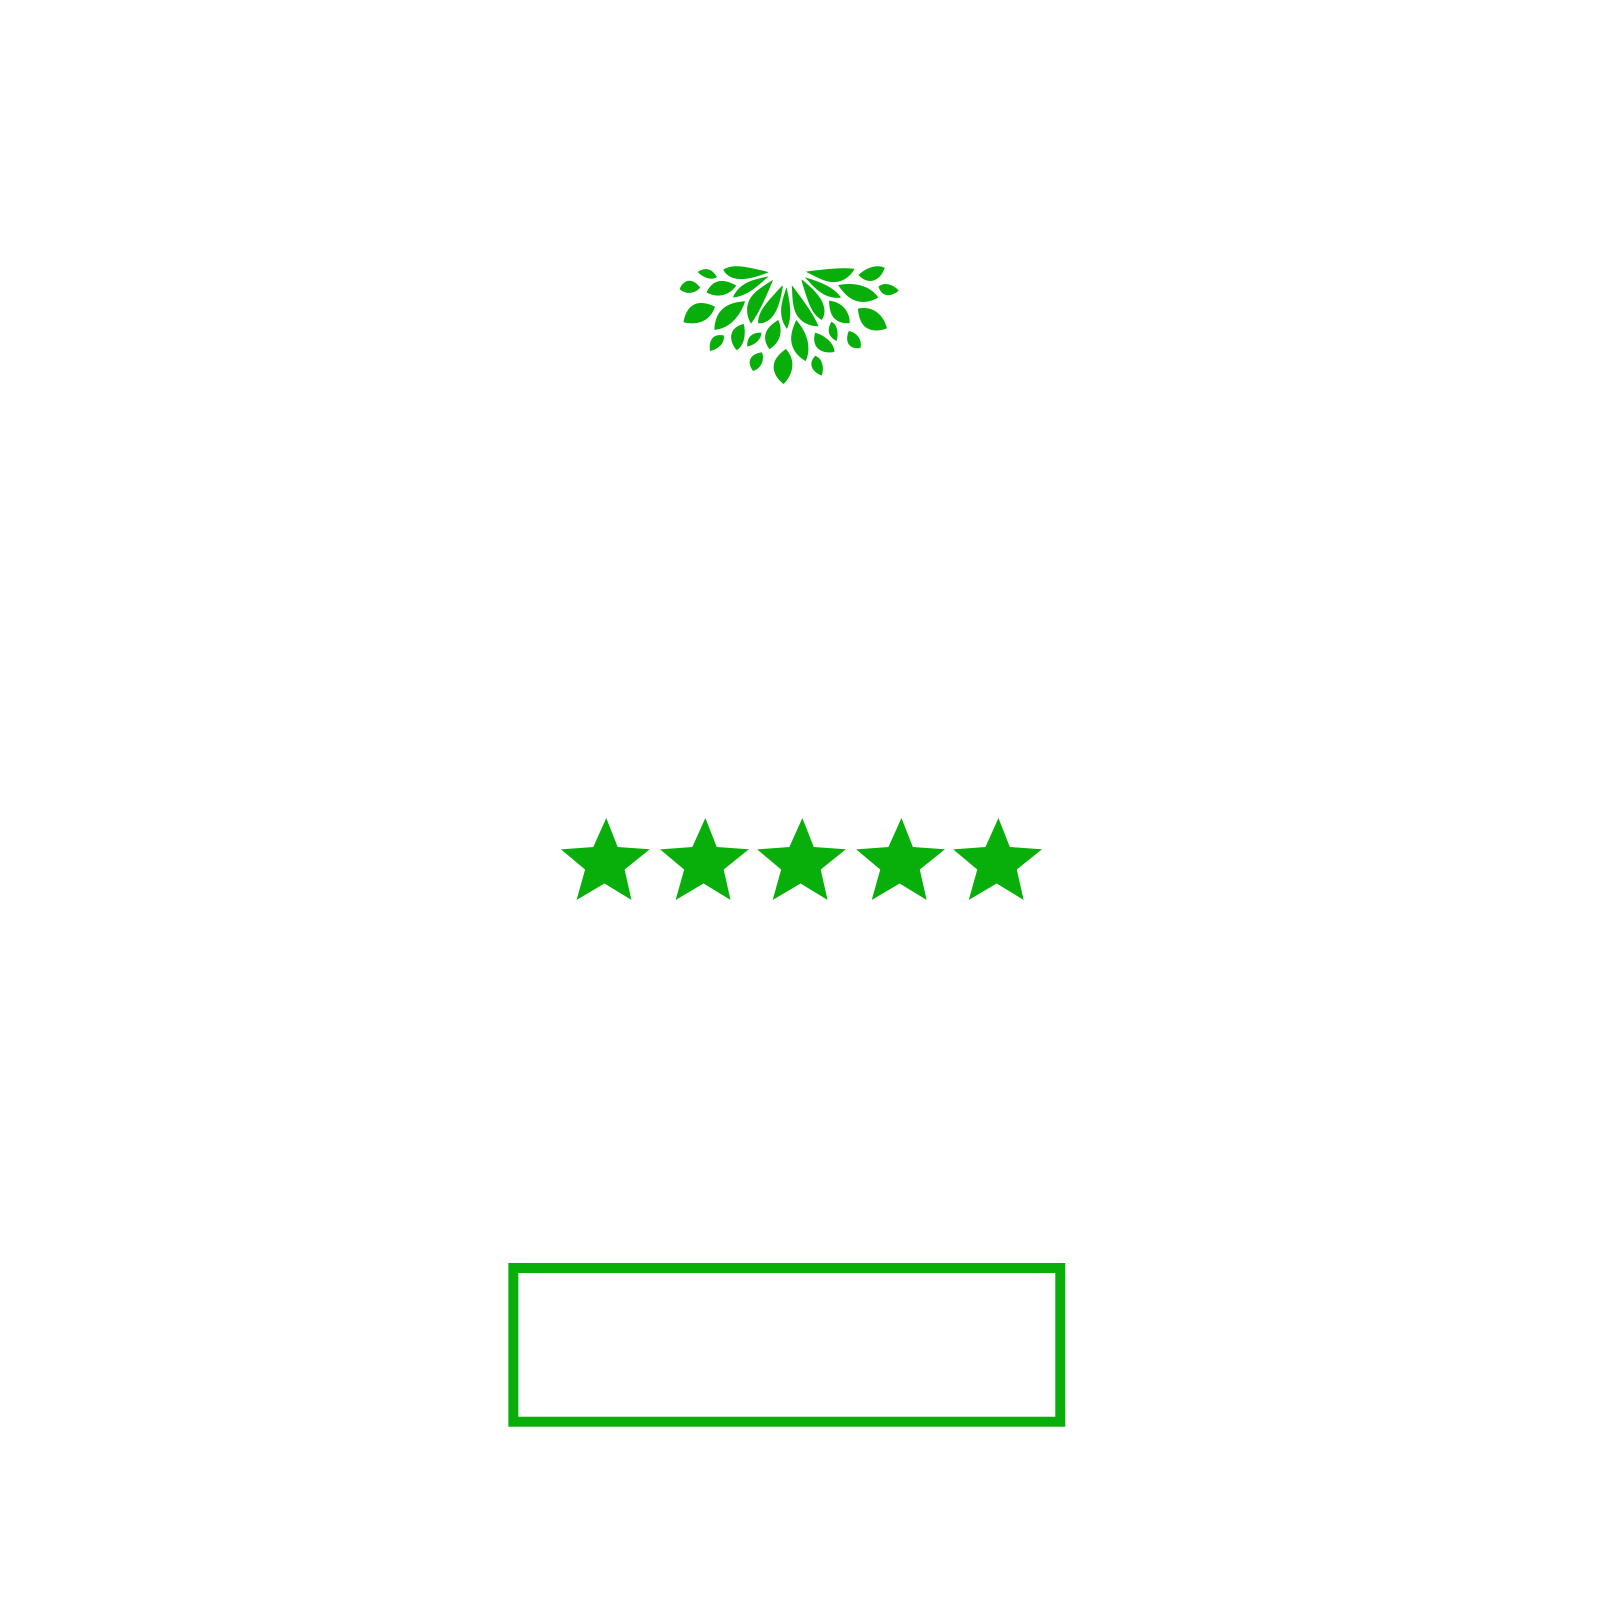 Today only:30% off 5-star favorites with code FIVESTAR30